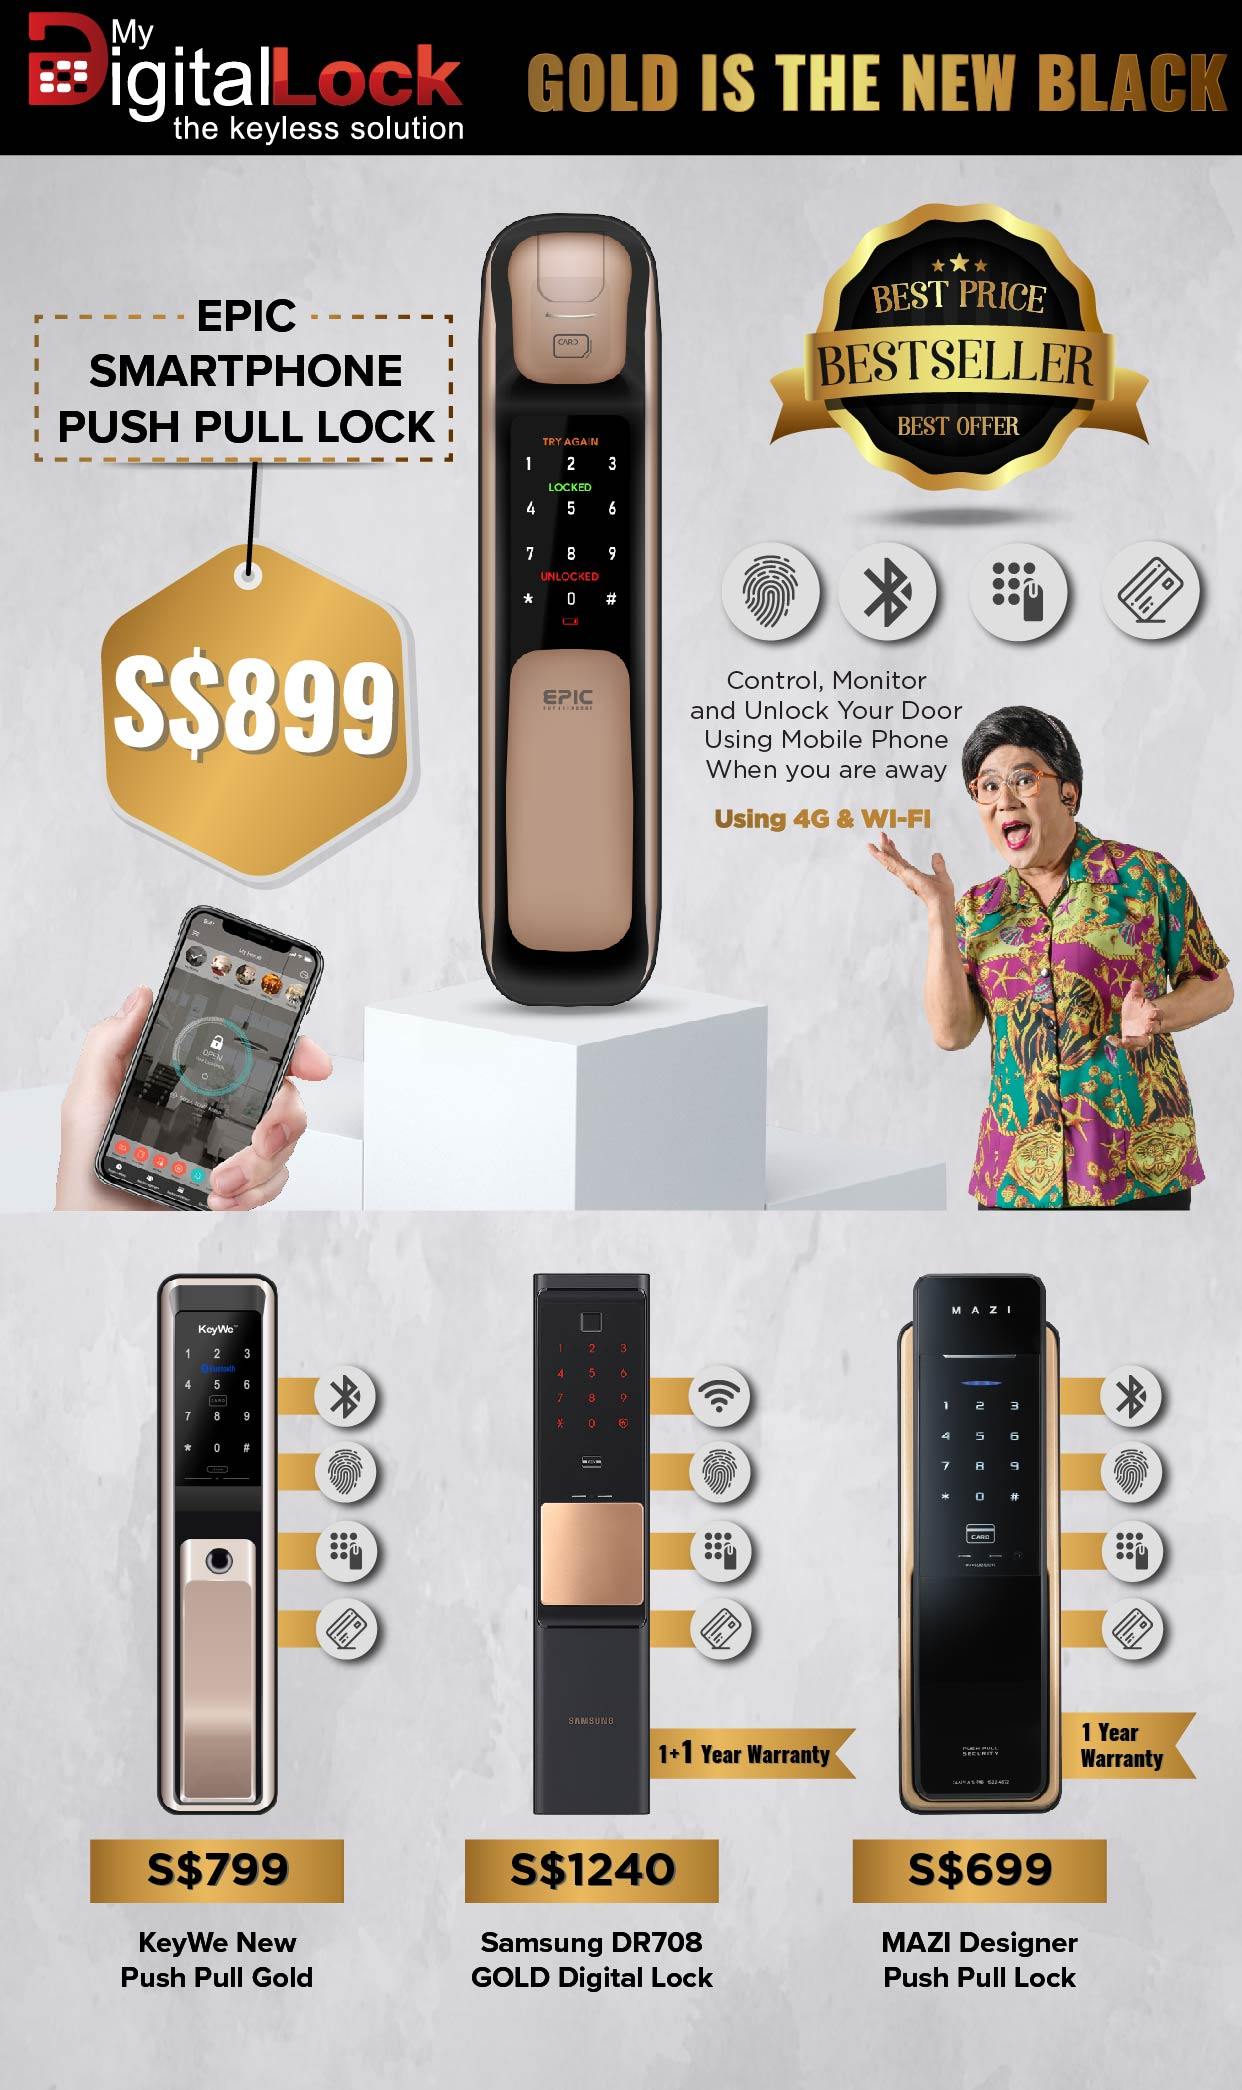 samsung digital lock - Best Seller